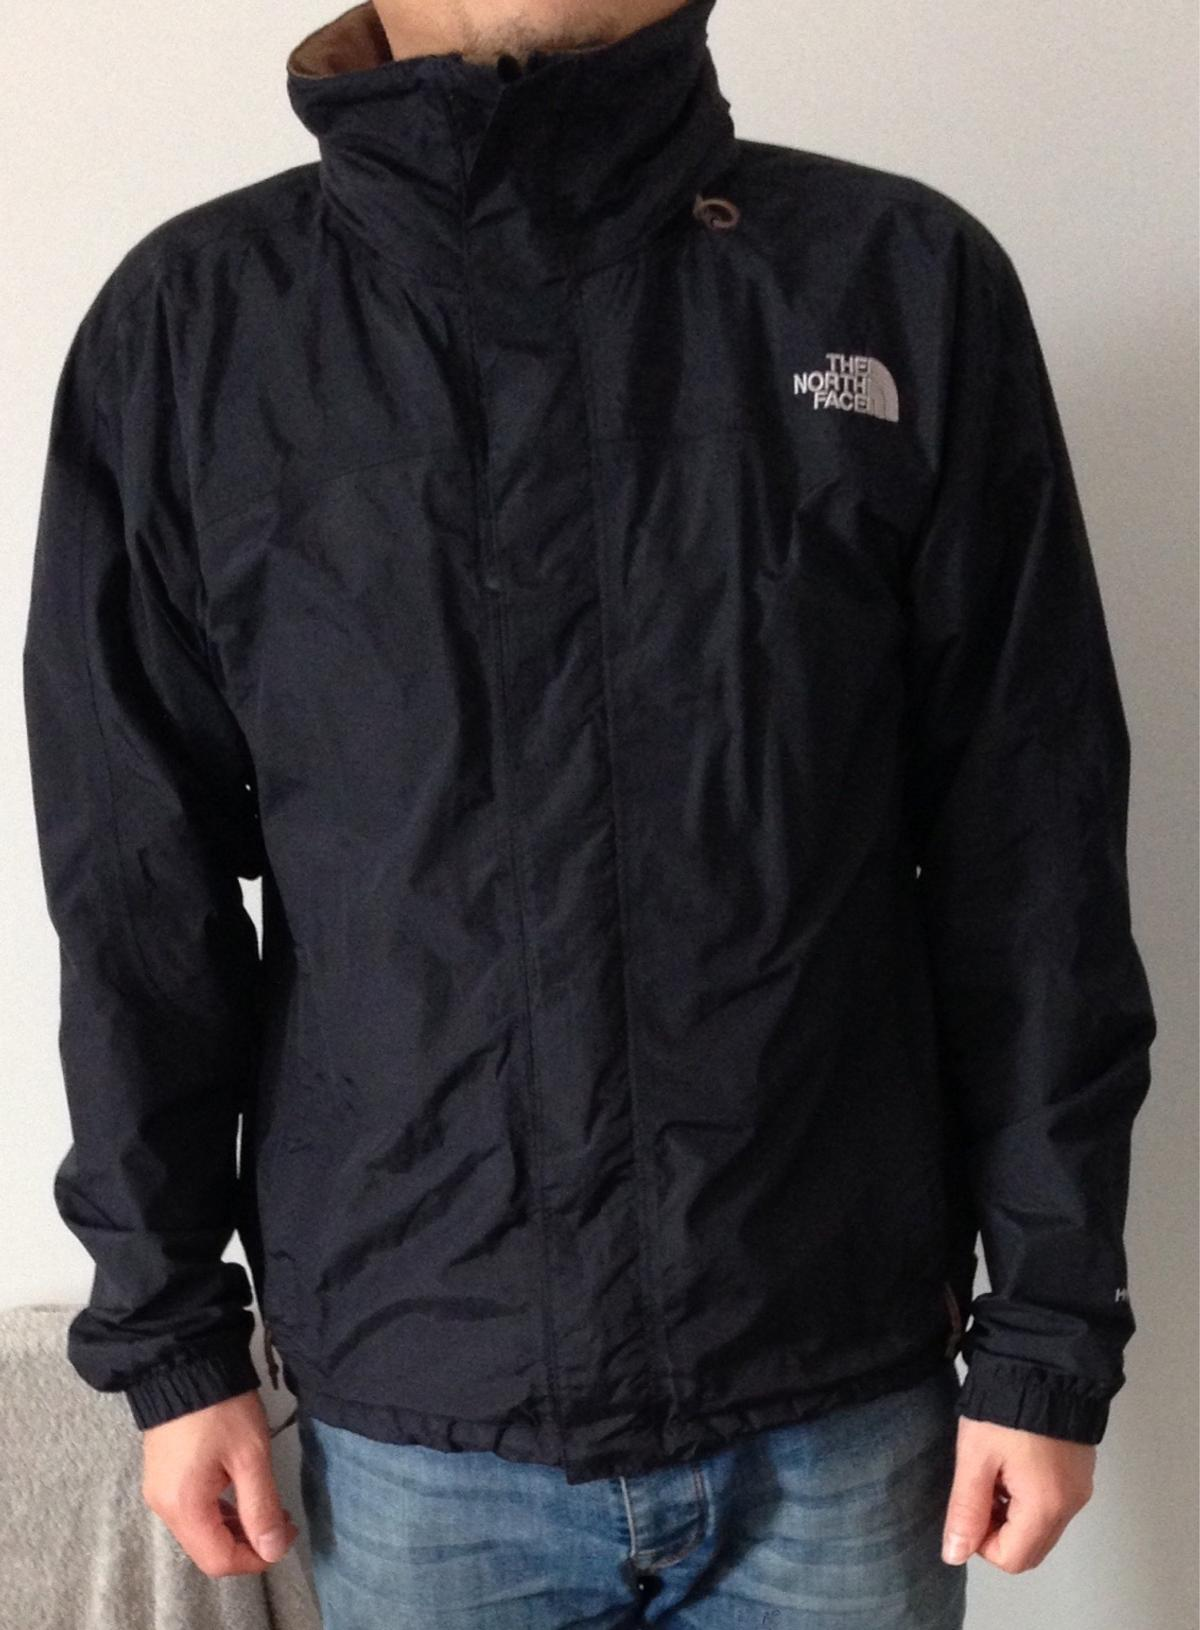 ab0fd54a4 North Face Hyvent Jacket - Small size